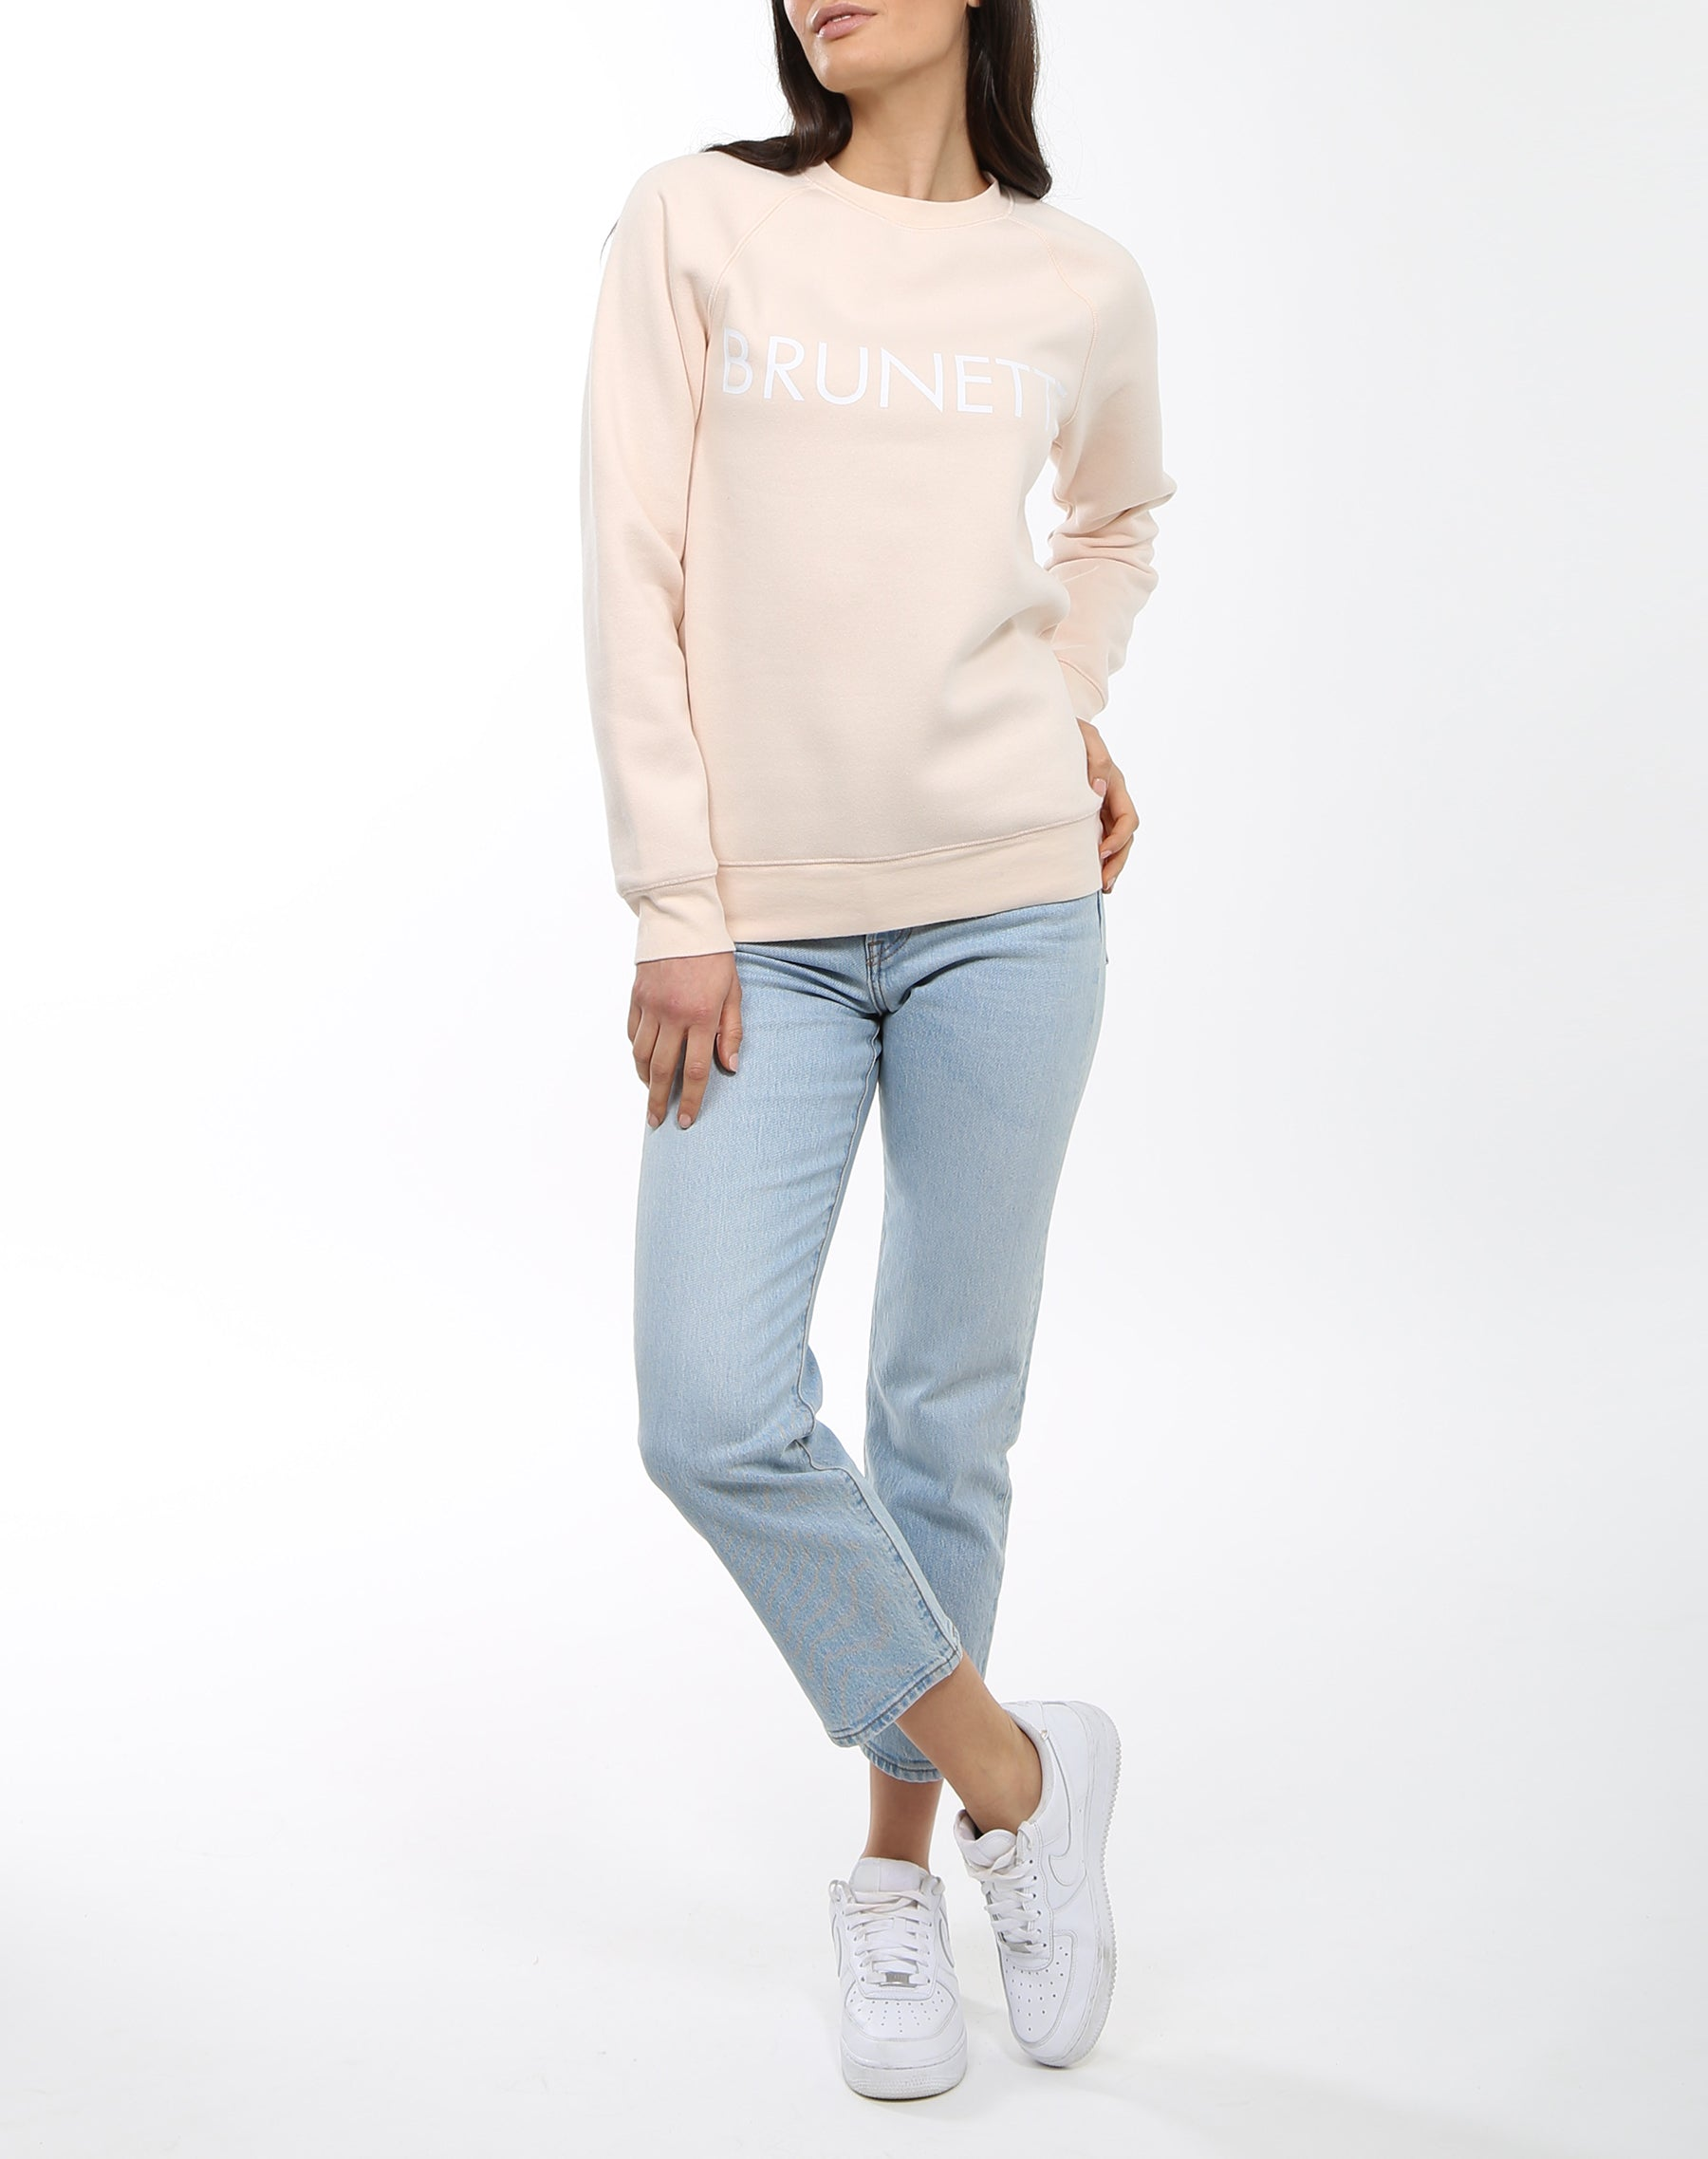 A full body photoraph of a model wearing the Brunette Crew Neck Sweatshirt in Peach Crush by Brunette the Label.